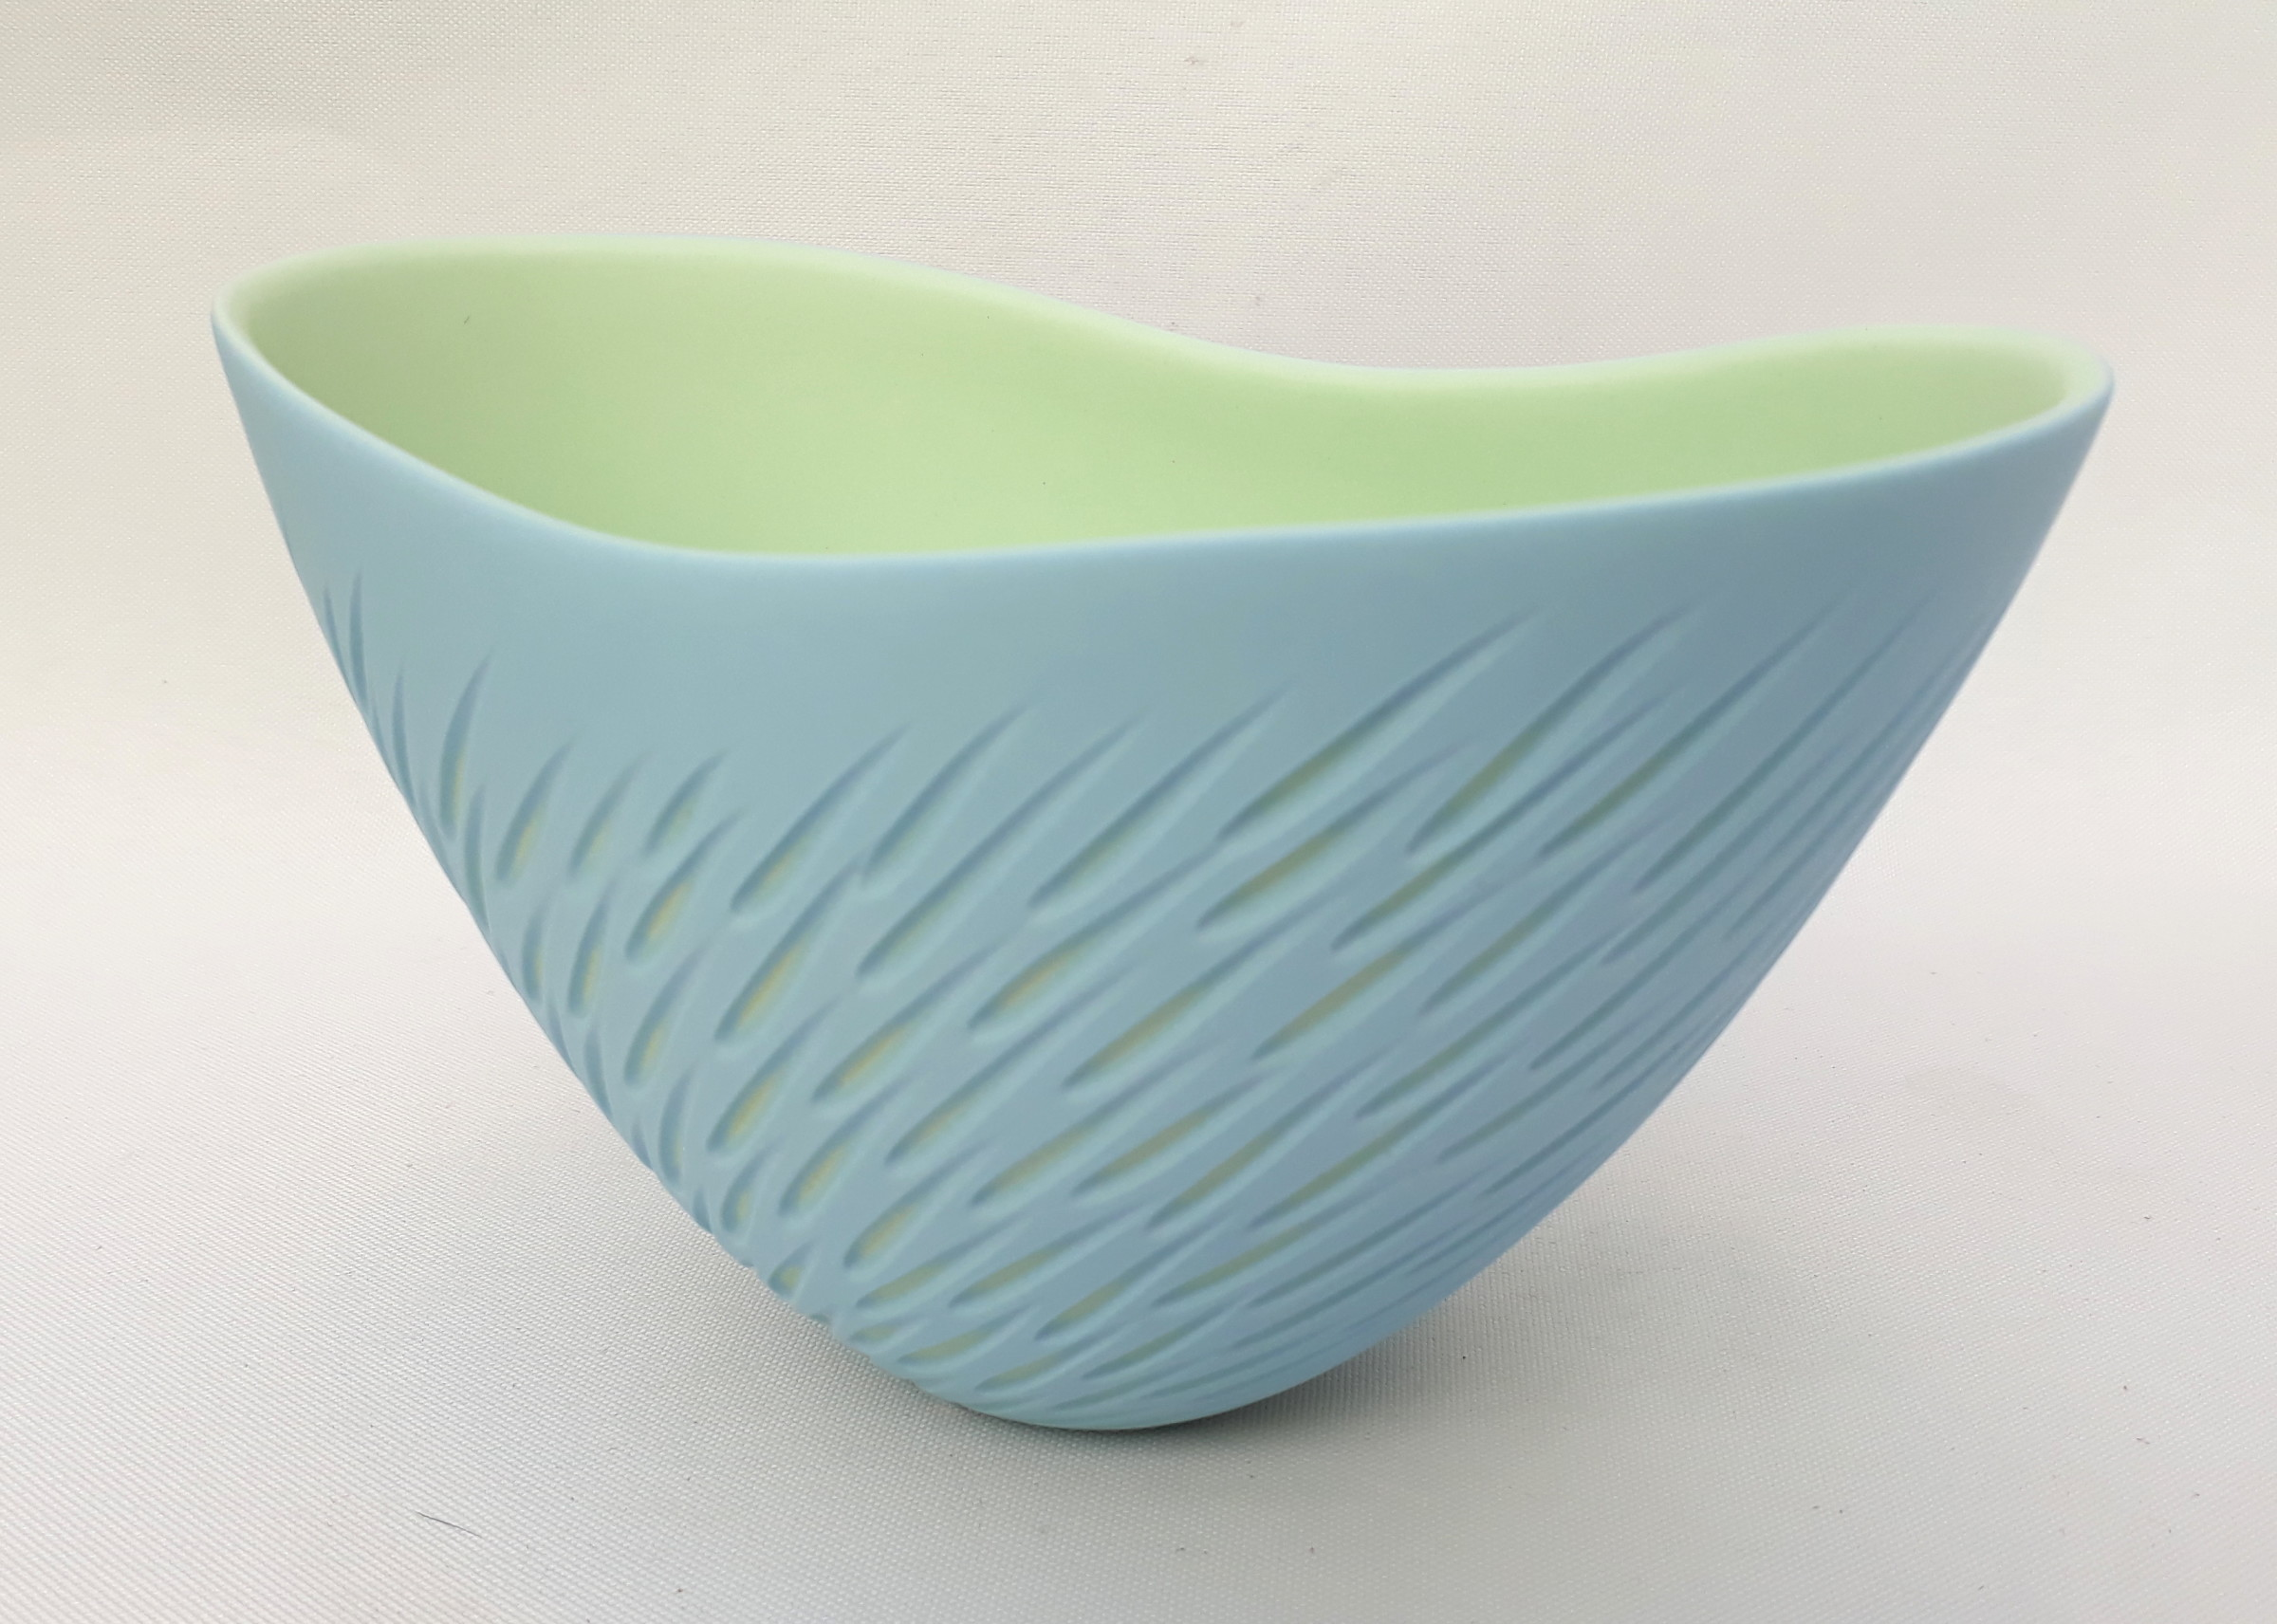 "<span class=""link fancybox-details-link""><a href=""/artists/60-sasha-wardell/works/4132-sasha-wardell-small-shoal-bowl-2017/"">View Detail Page</a></span><div class=""artist""><strong>Sasha Wardell</strong></div> <div class=""title""><em>Small Shoal Bowl</em>, 2017</div> <div class=""signed_and_dated"">inscribed with artist initials on base</div> <div class=""medium"">layered and sliced bone china</div><div class=""copyright_line"">OwnArt: £ 18 x 10 Months, 0% APR</div>"